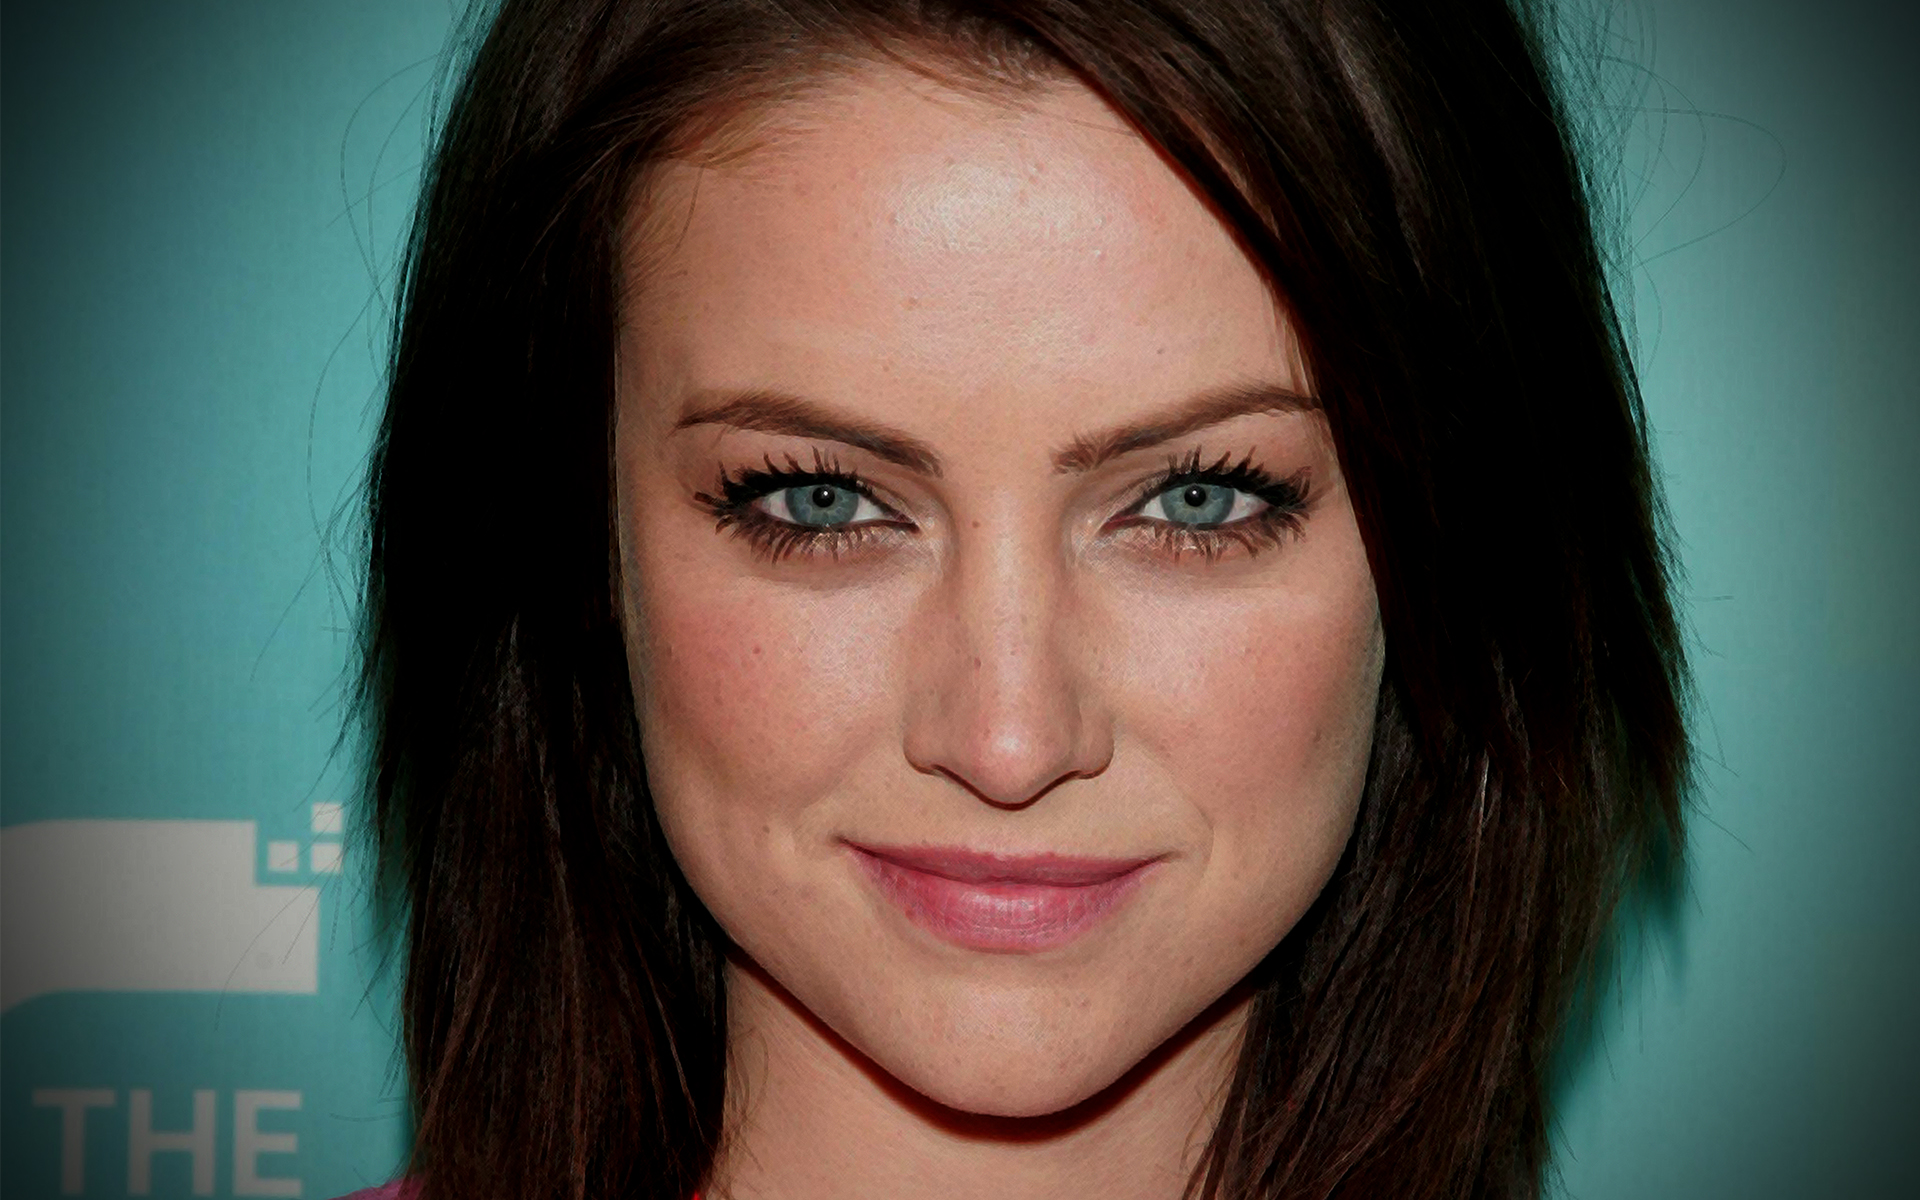 1920x1200 - Jessica Stroup Wallpapers 6